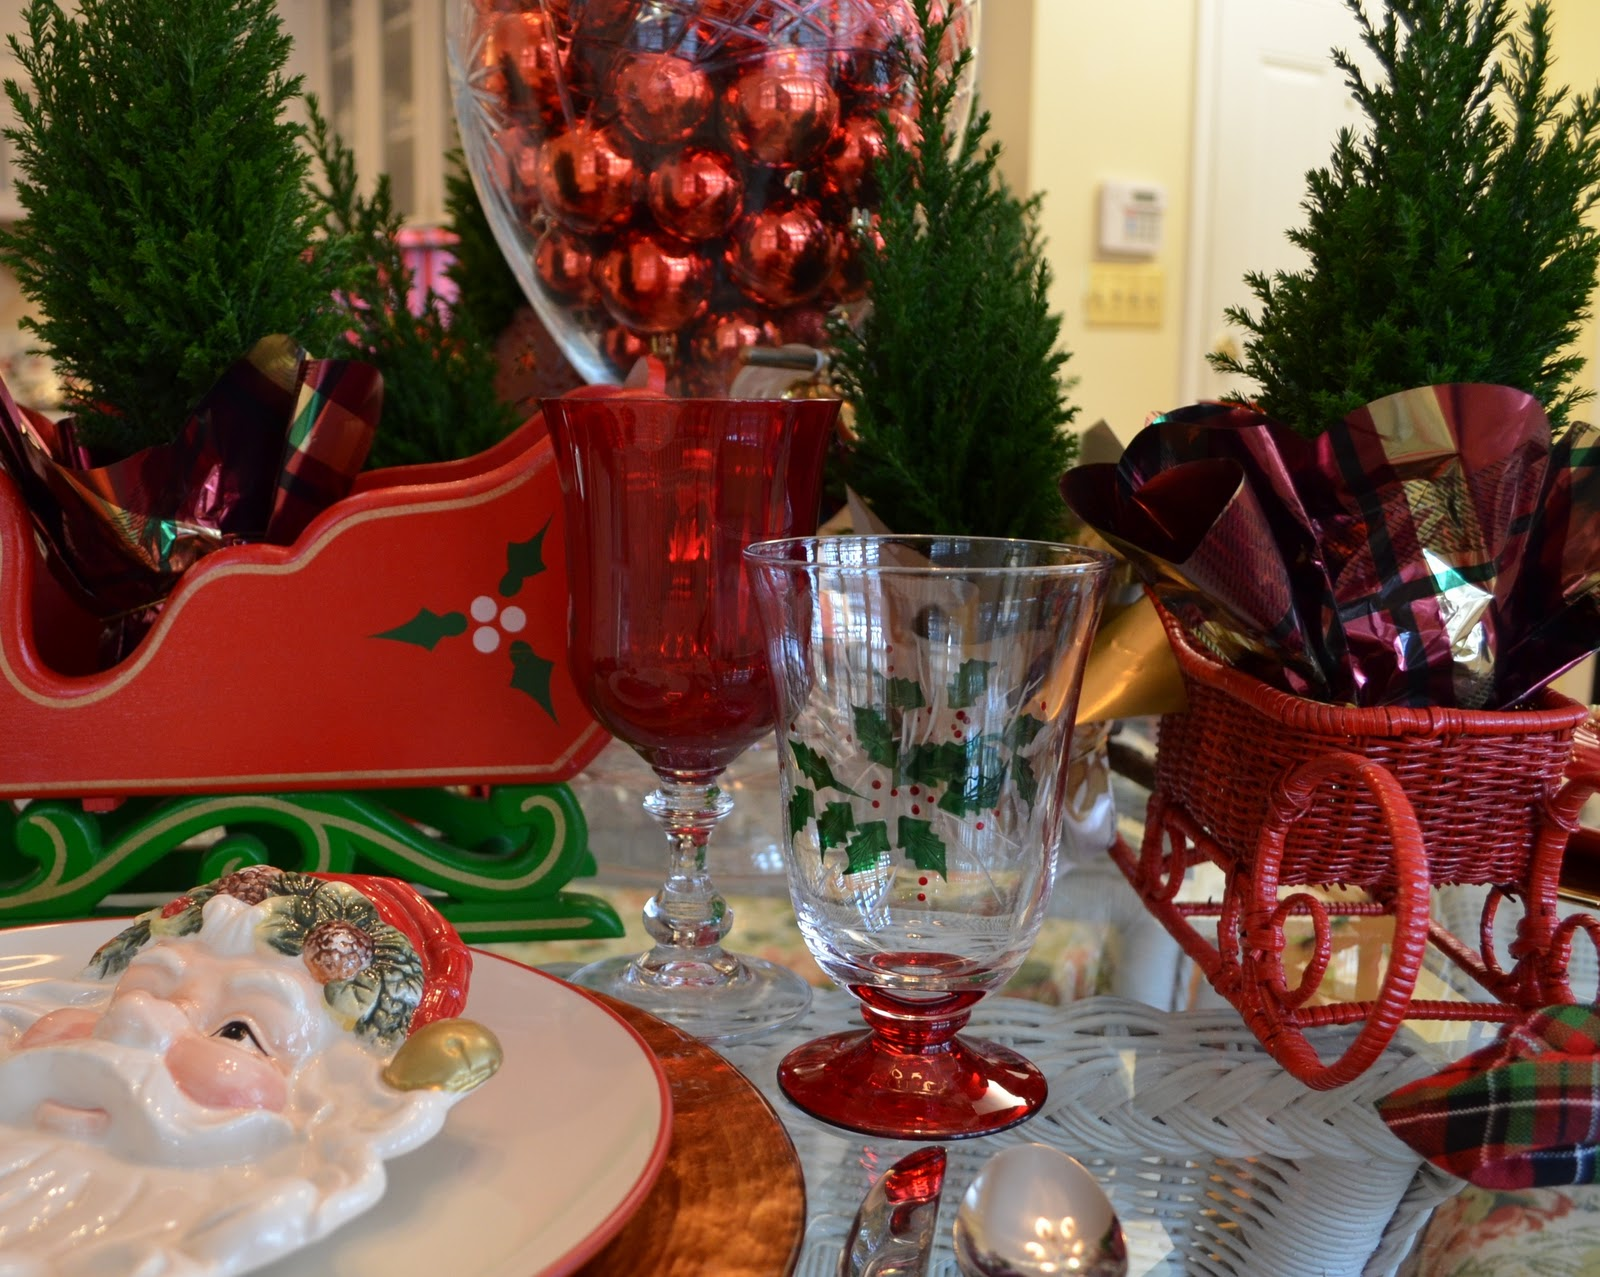 Santa Themed Tablescape With Plates And A Sleigh